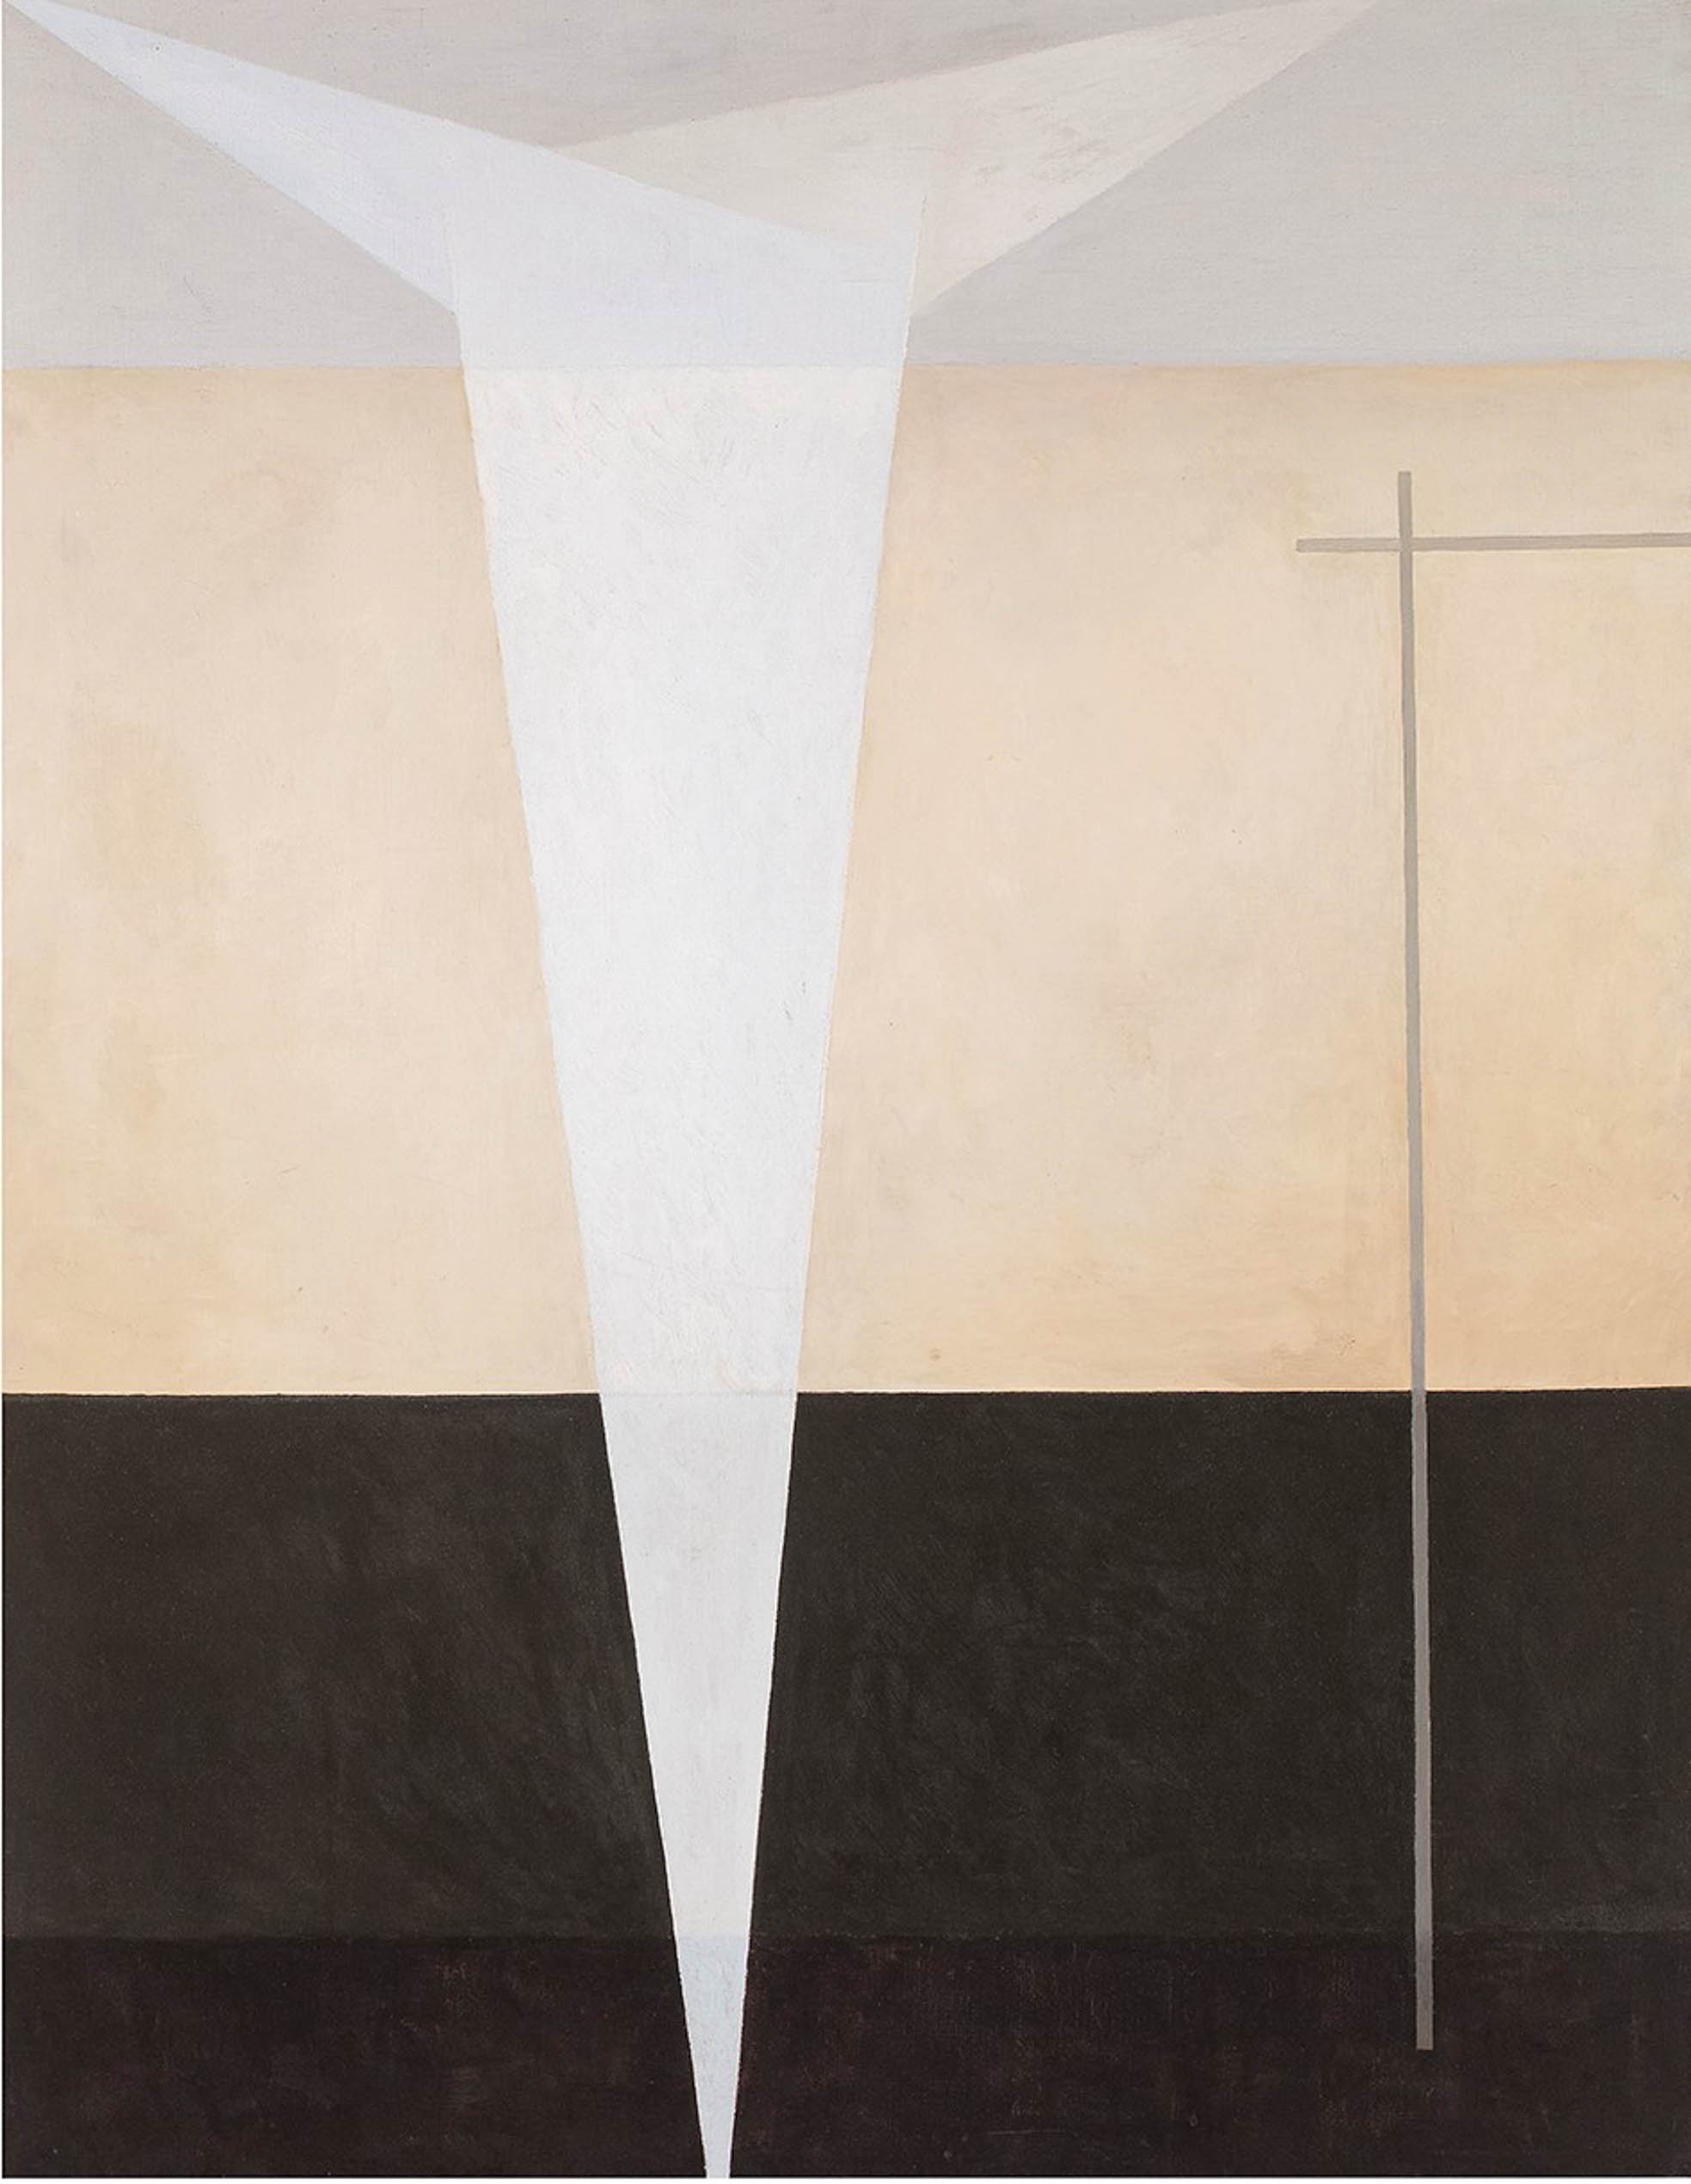 An abstract painting split into three sections. There is a white movement that comes down, slightly off centered. On the right two lines intersect to create a right angle.